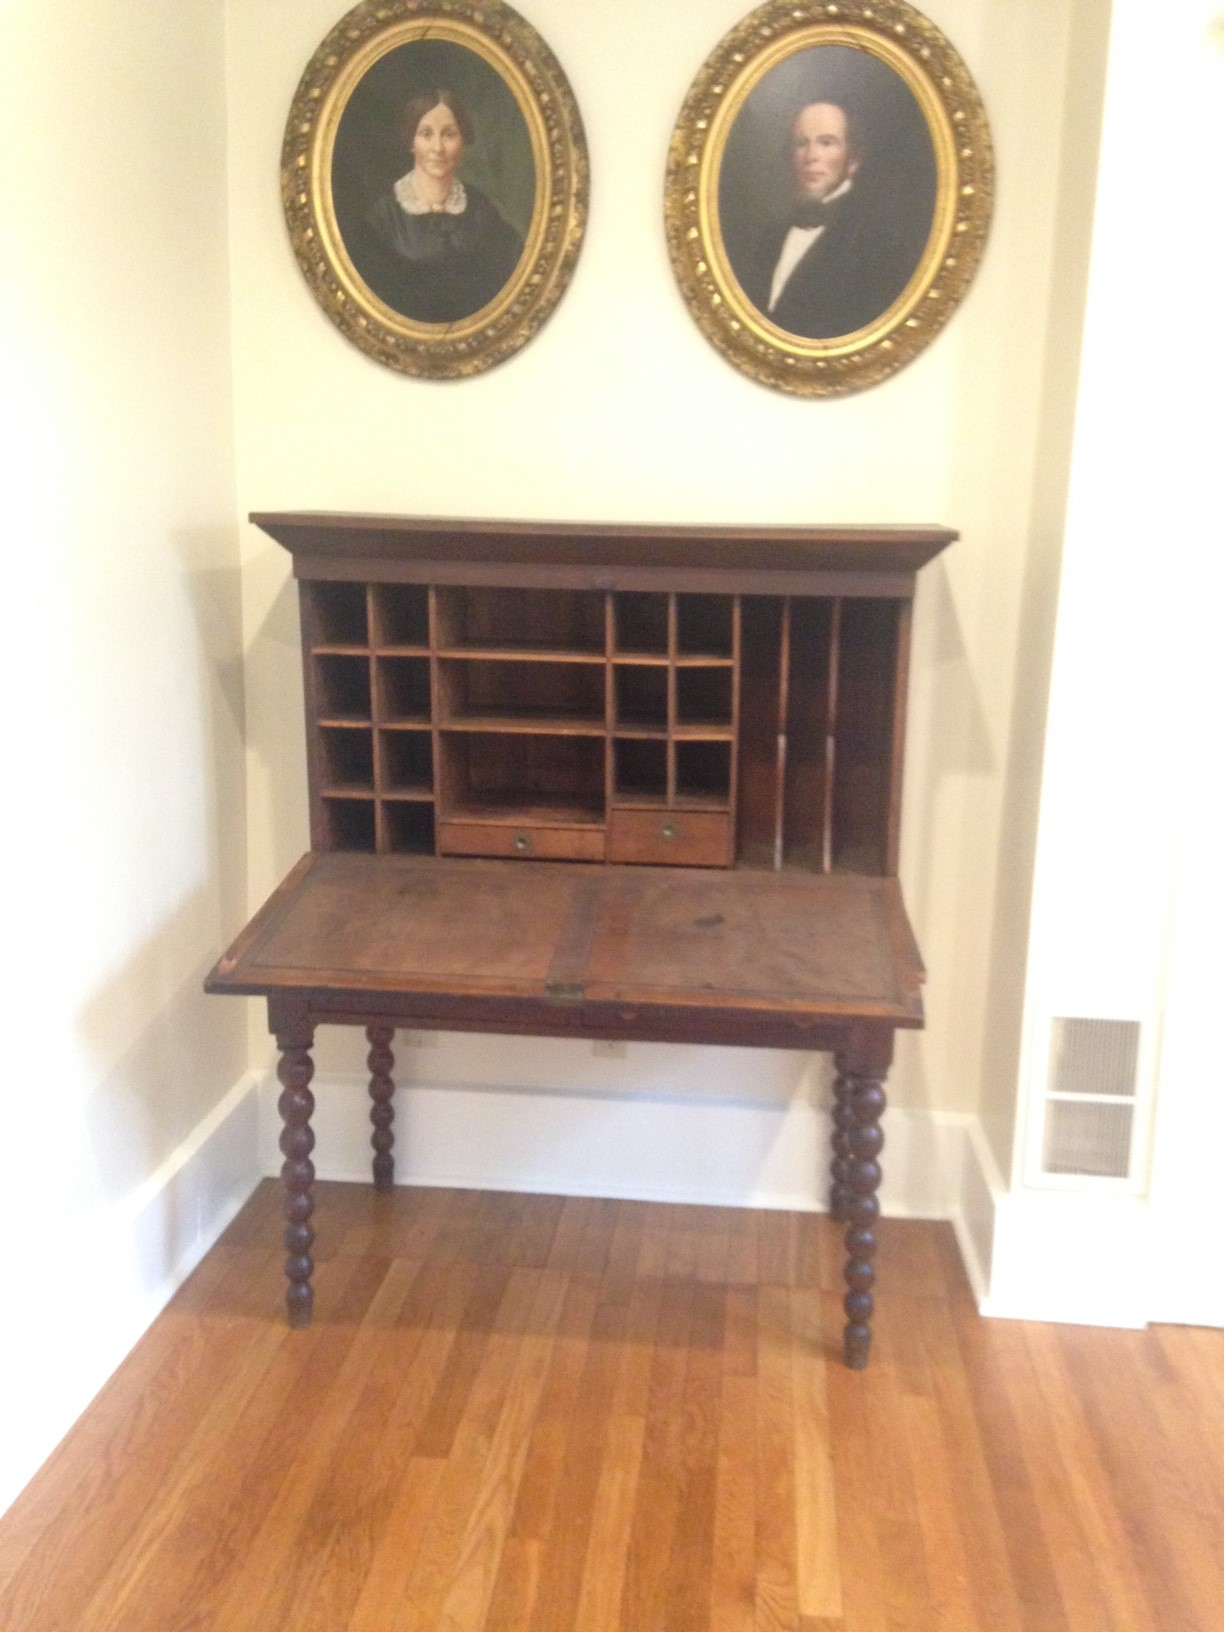 According to Robbins Hunter, Jr., this walnut desk, c. 1840, was used by Luke Warner in his office on the Ohio Canal in Newark.  Pictured above the desk are Luke and his wife Sarah, c. 1860.